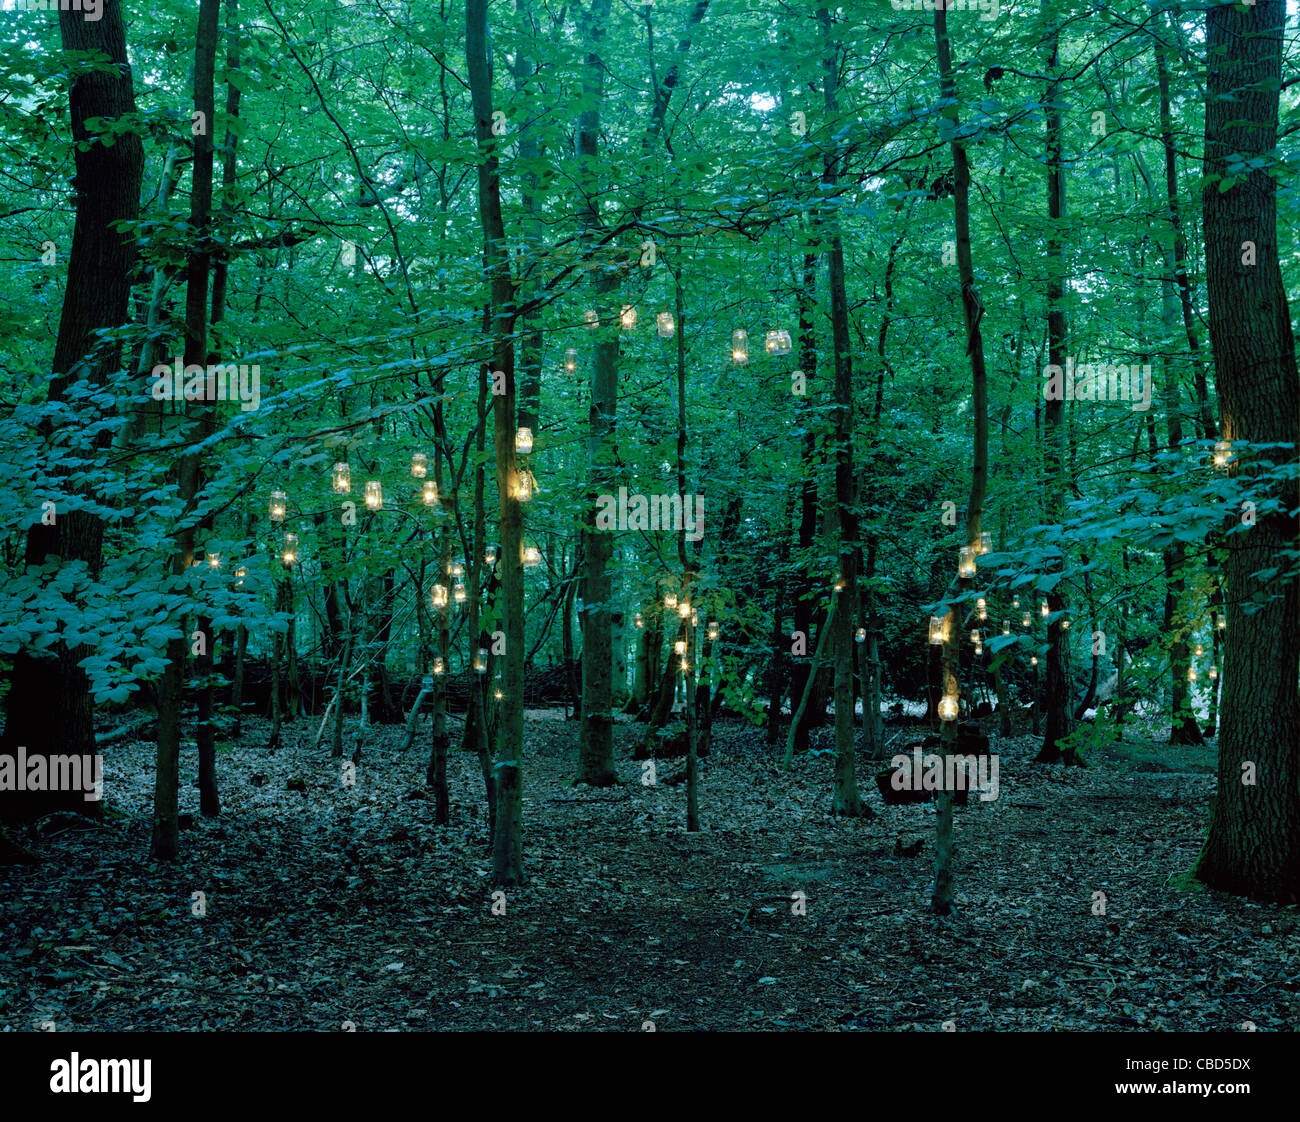 Lights hanging from trees in forest Stock Photo